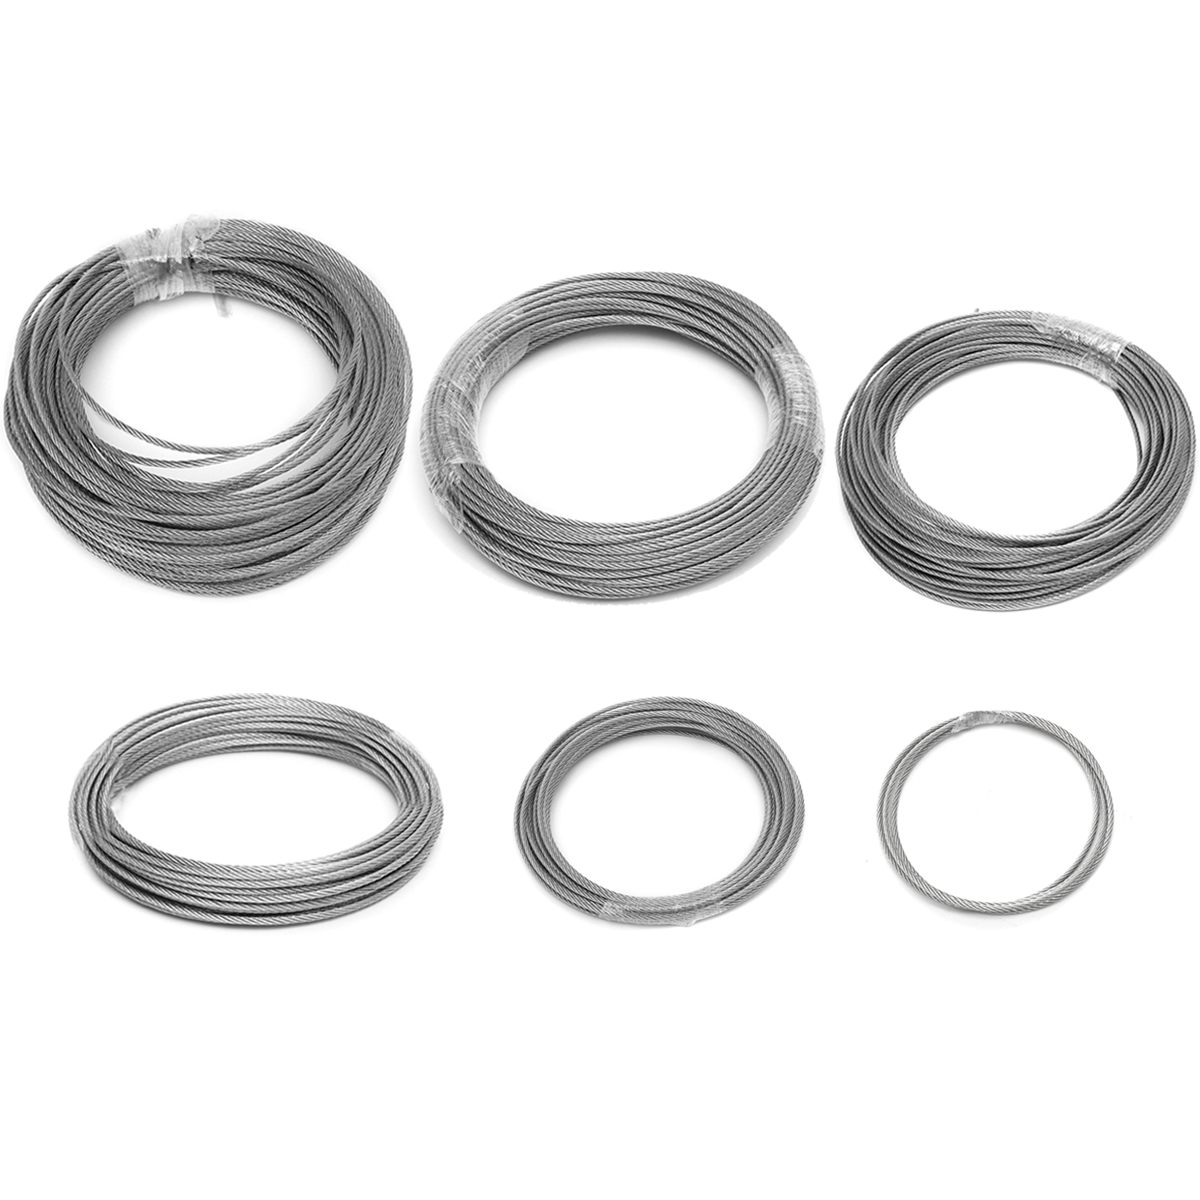 3mm Stainless Steel Wire Rope Tensile Diameter Structure Cable ...